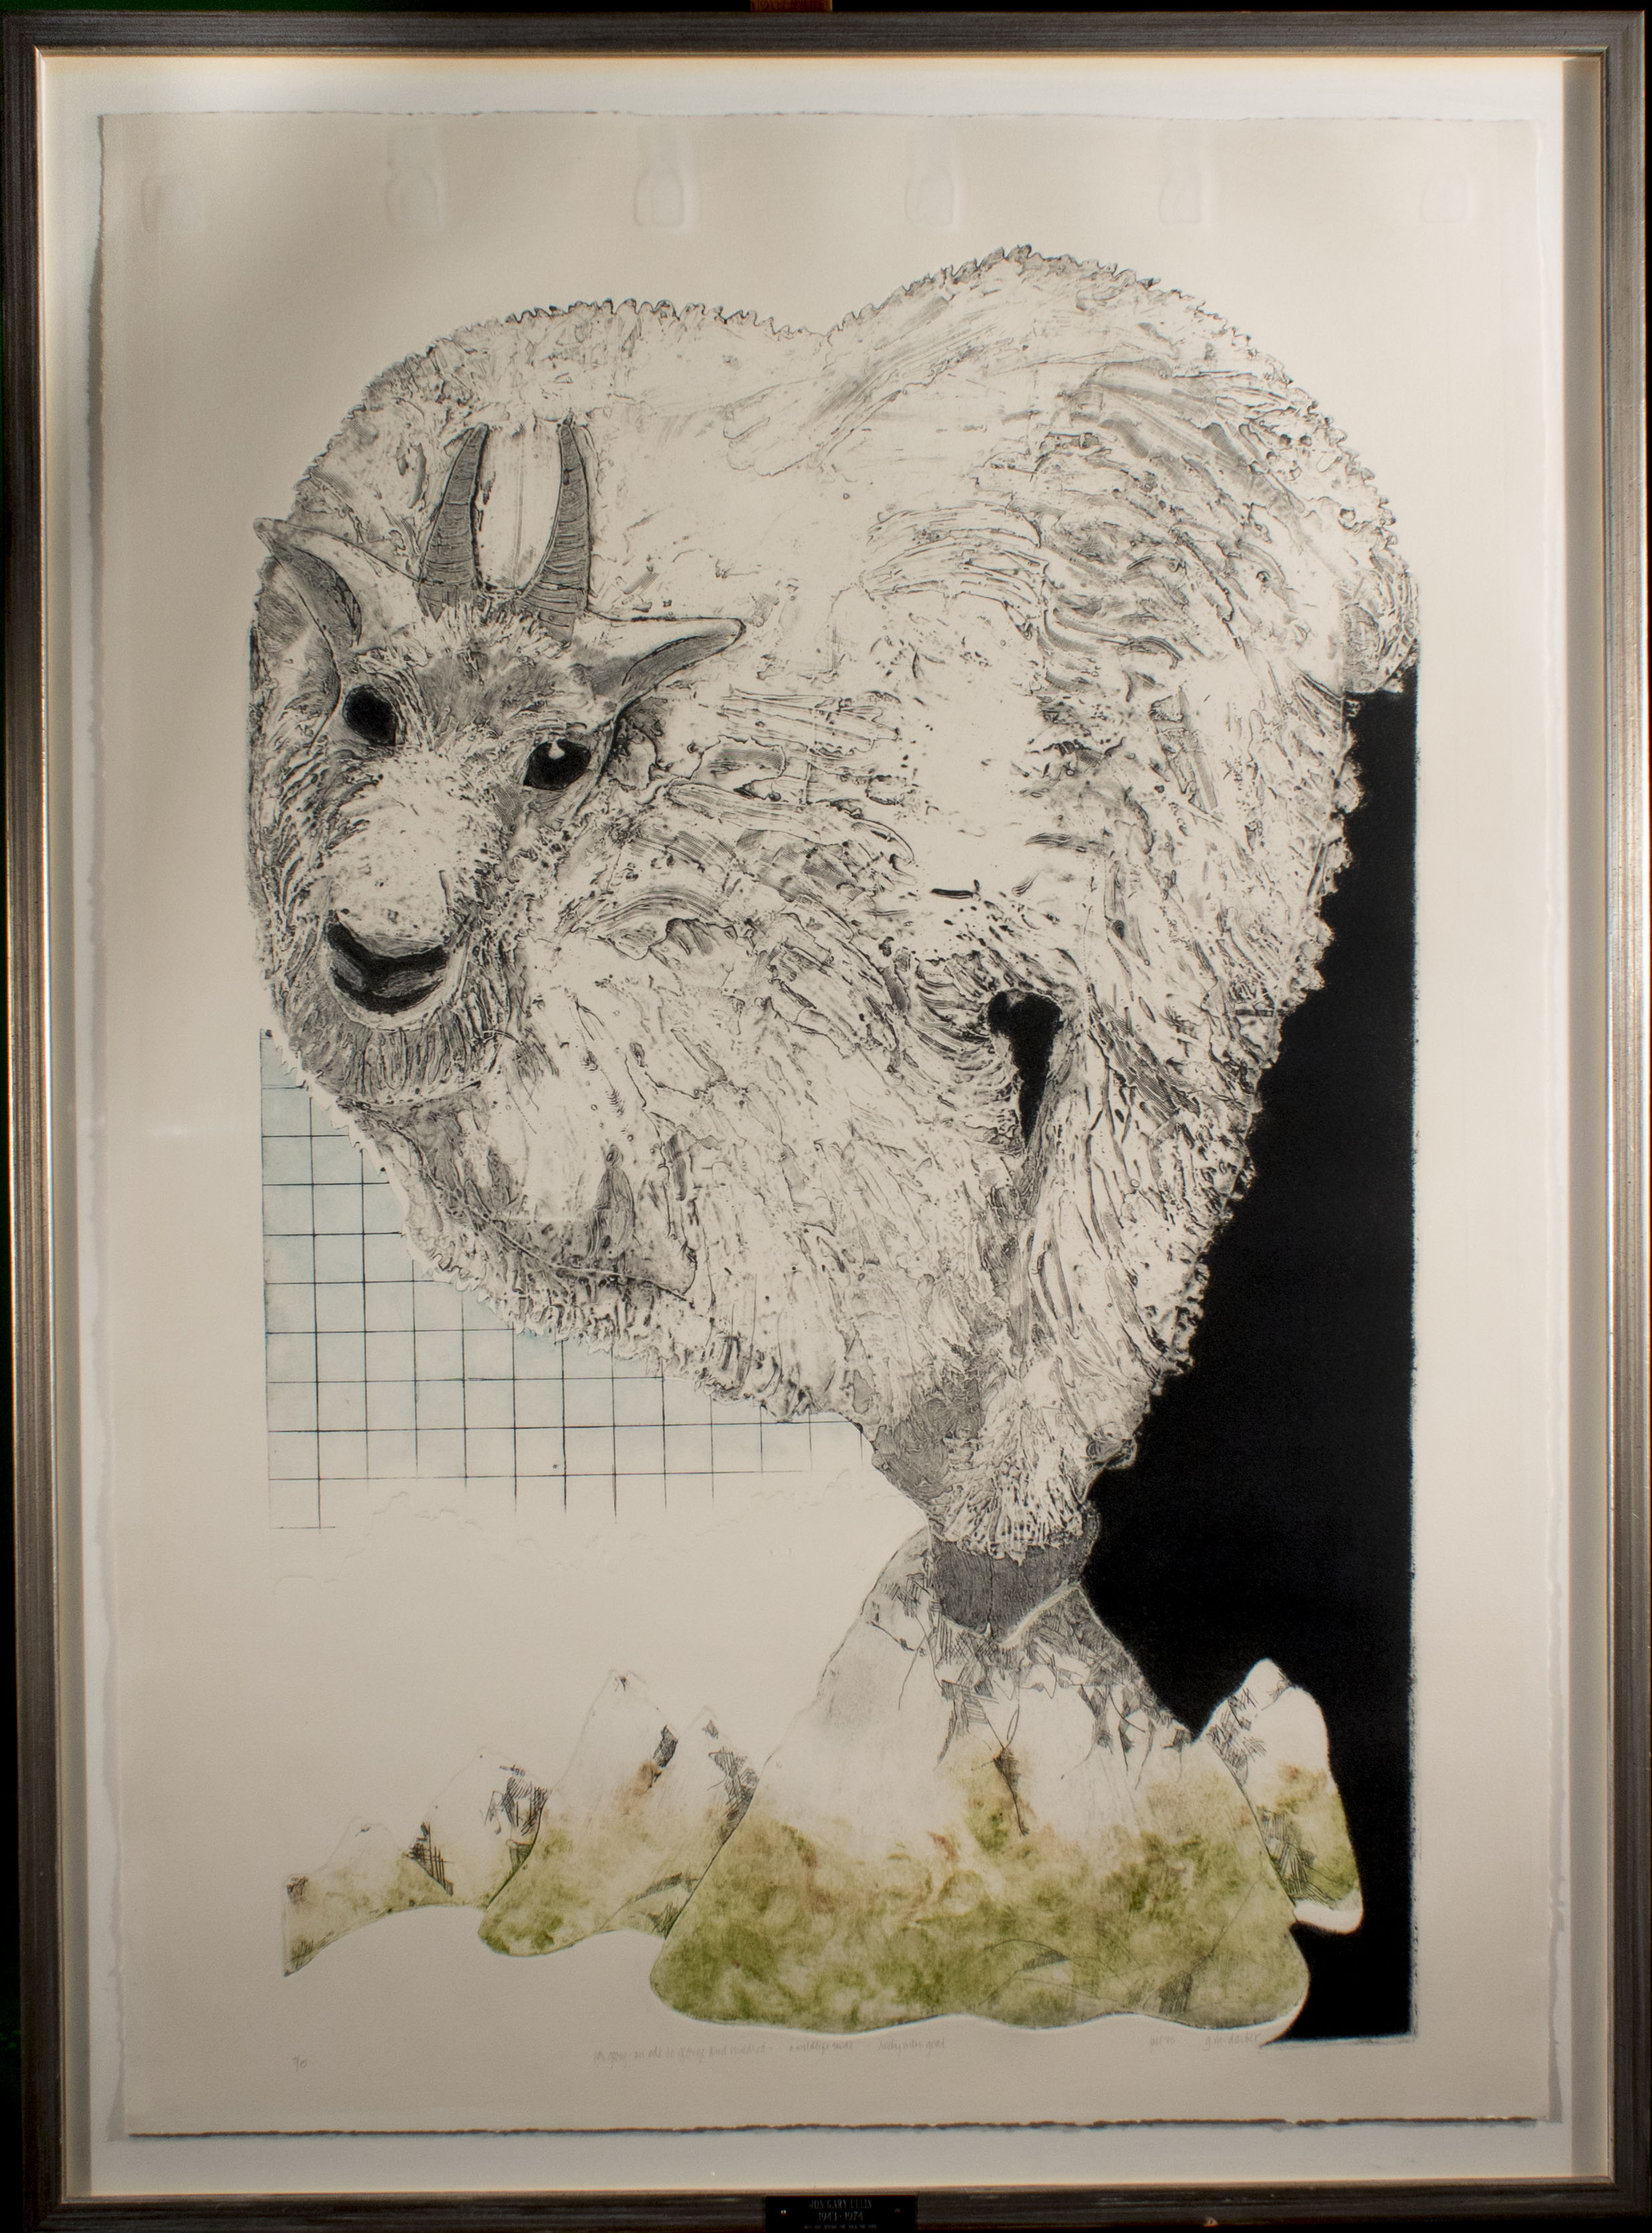 surreal collograph of a large mountain goat perched atop a small mountain